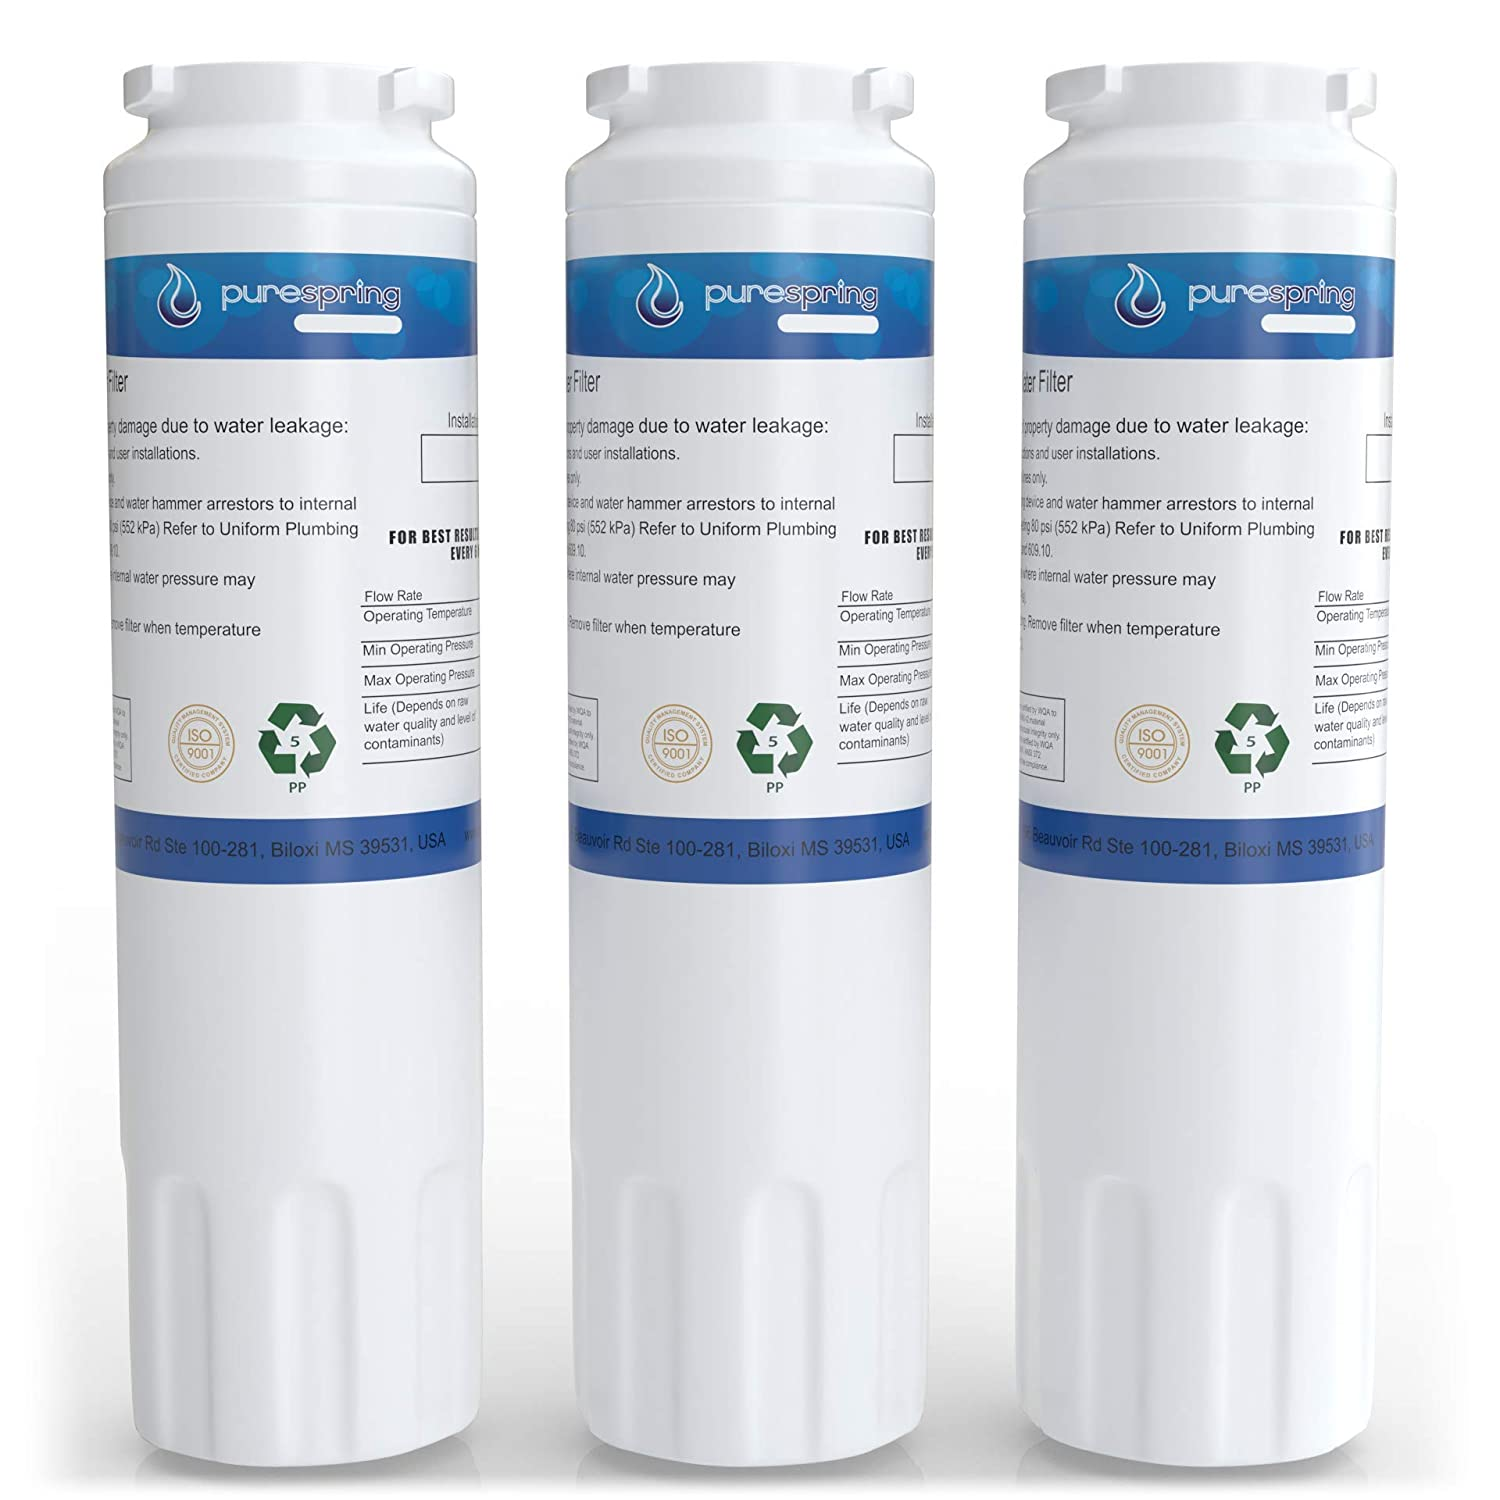 PureSpring Replacement Refrigerator Water Filter, Compatible with Viking RWFFR, Maytag UKF8001, 67003523, 4396395, Kenmore 46-9006, PUR Filter 4 & Many Others (3 Pack)